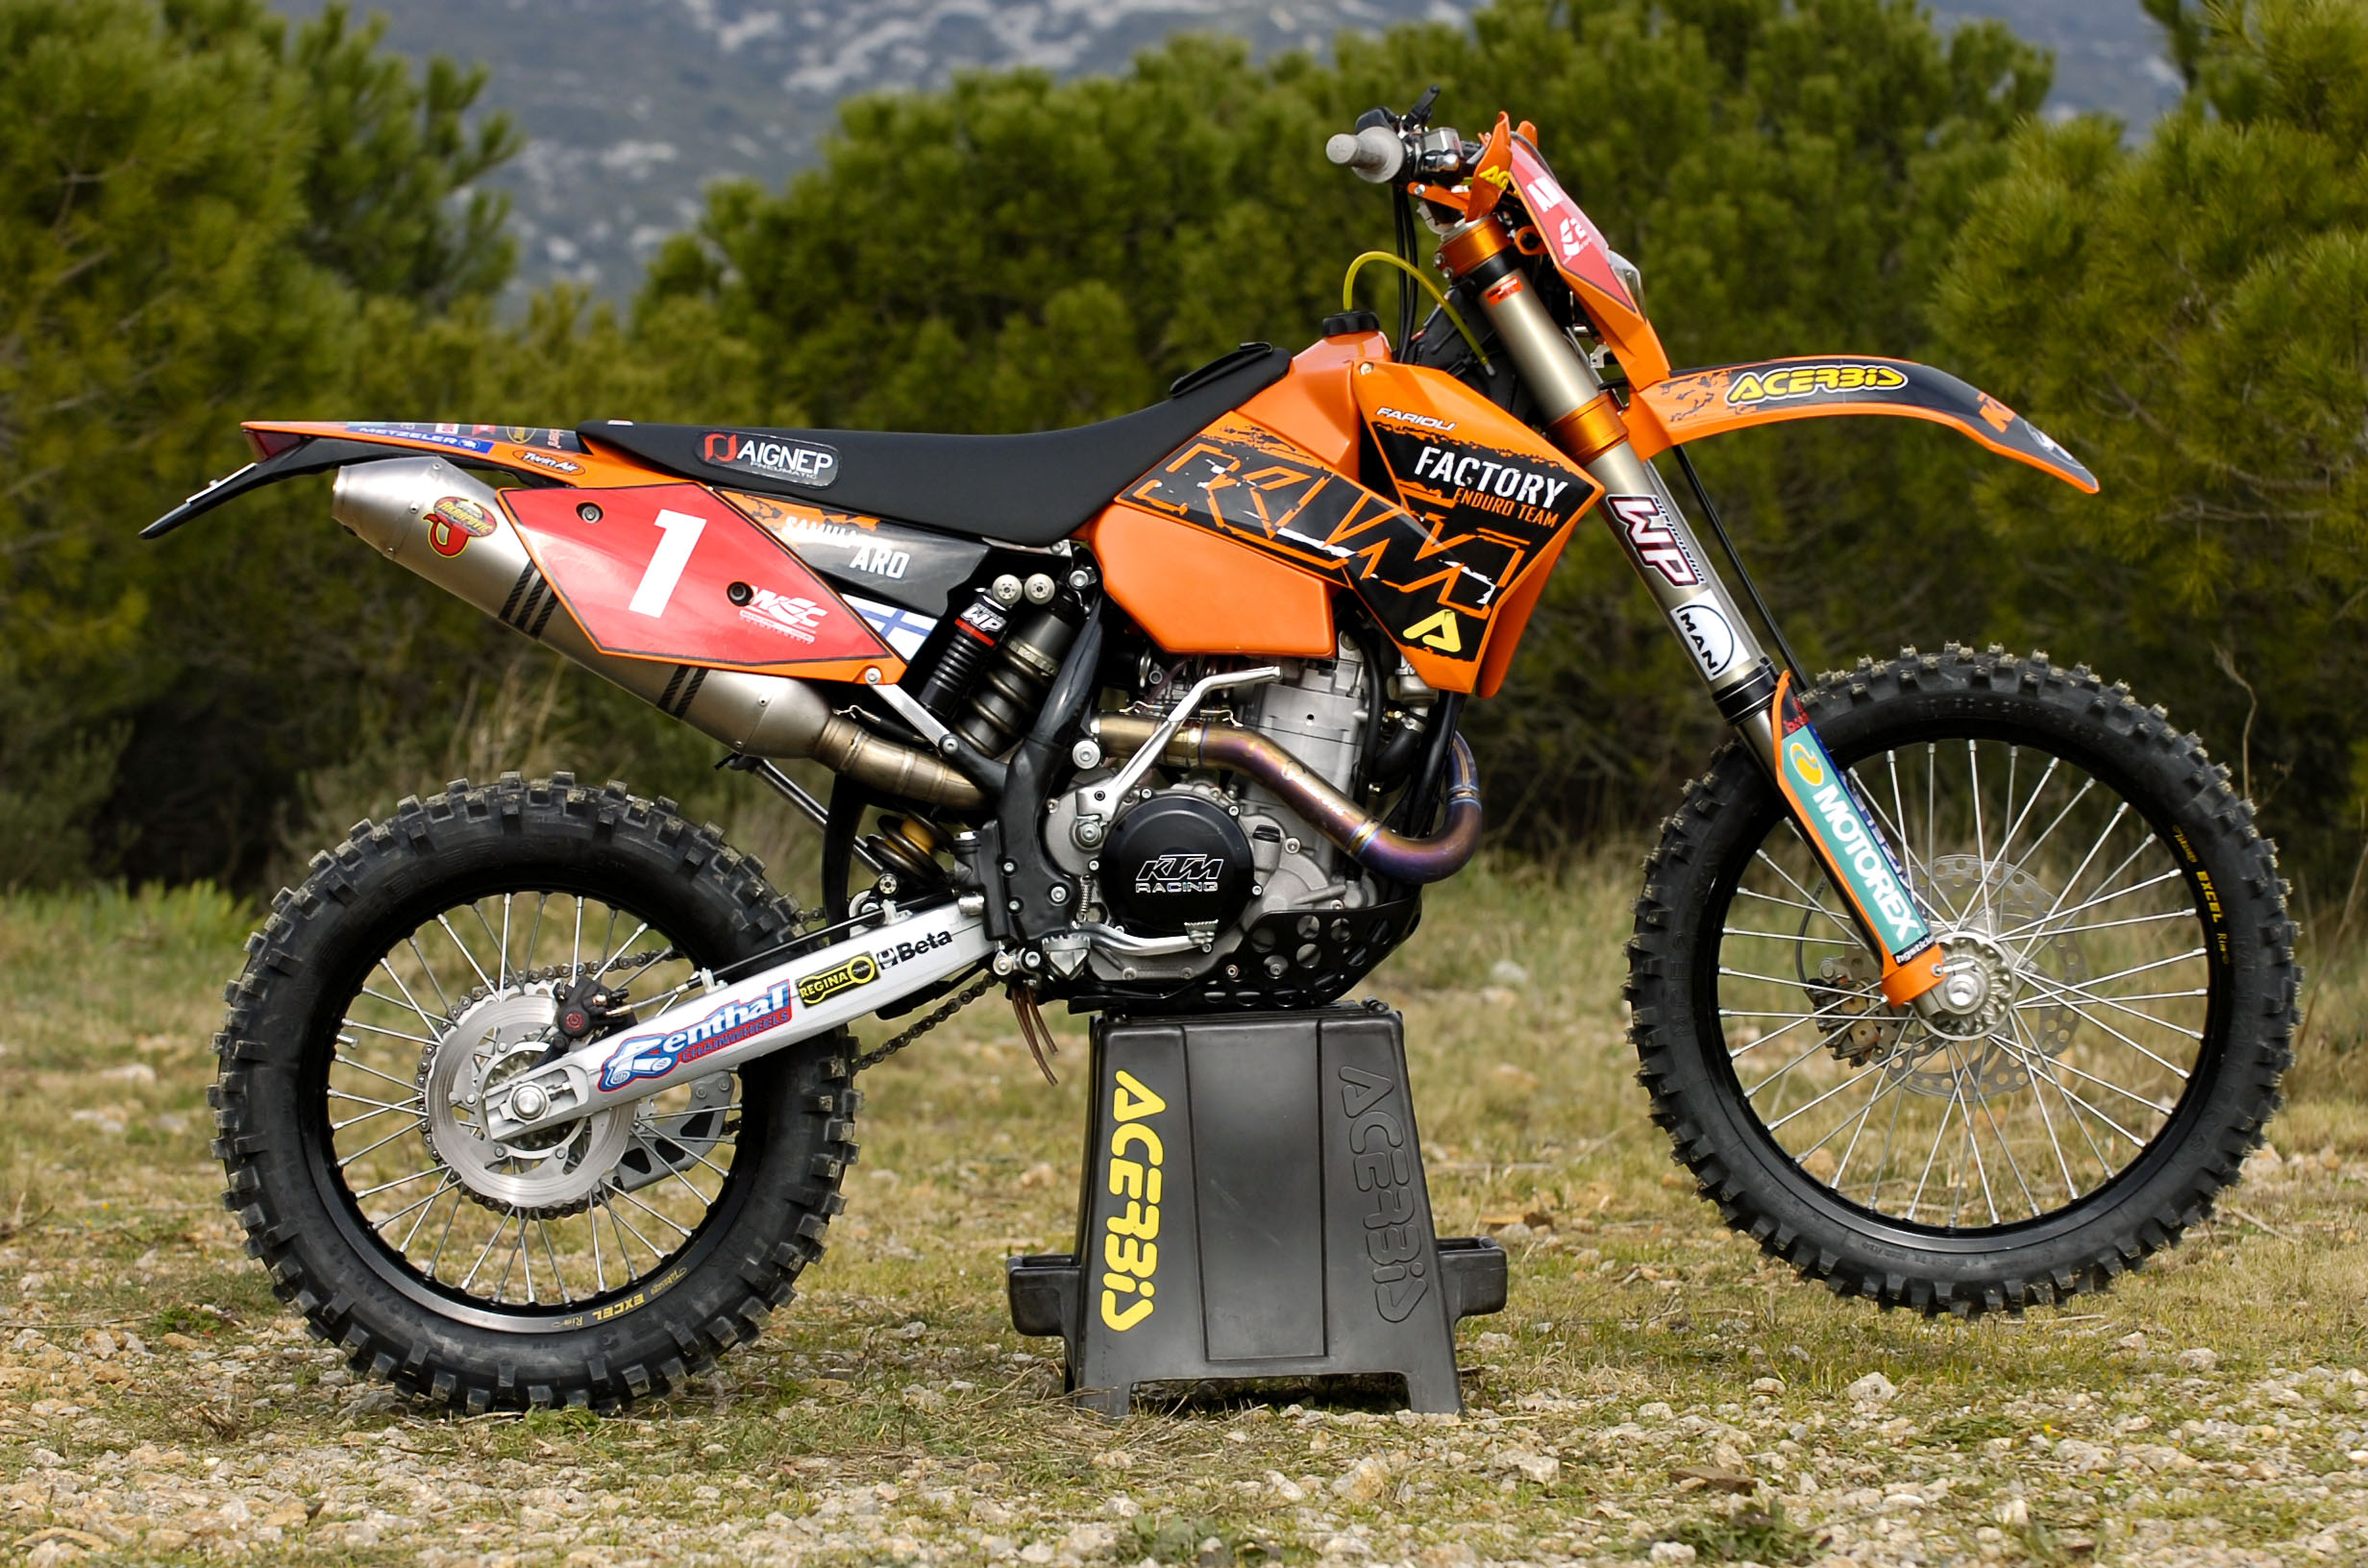 KTM 450 EXC Racing 2005 images #86425